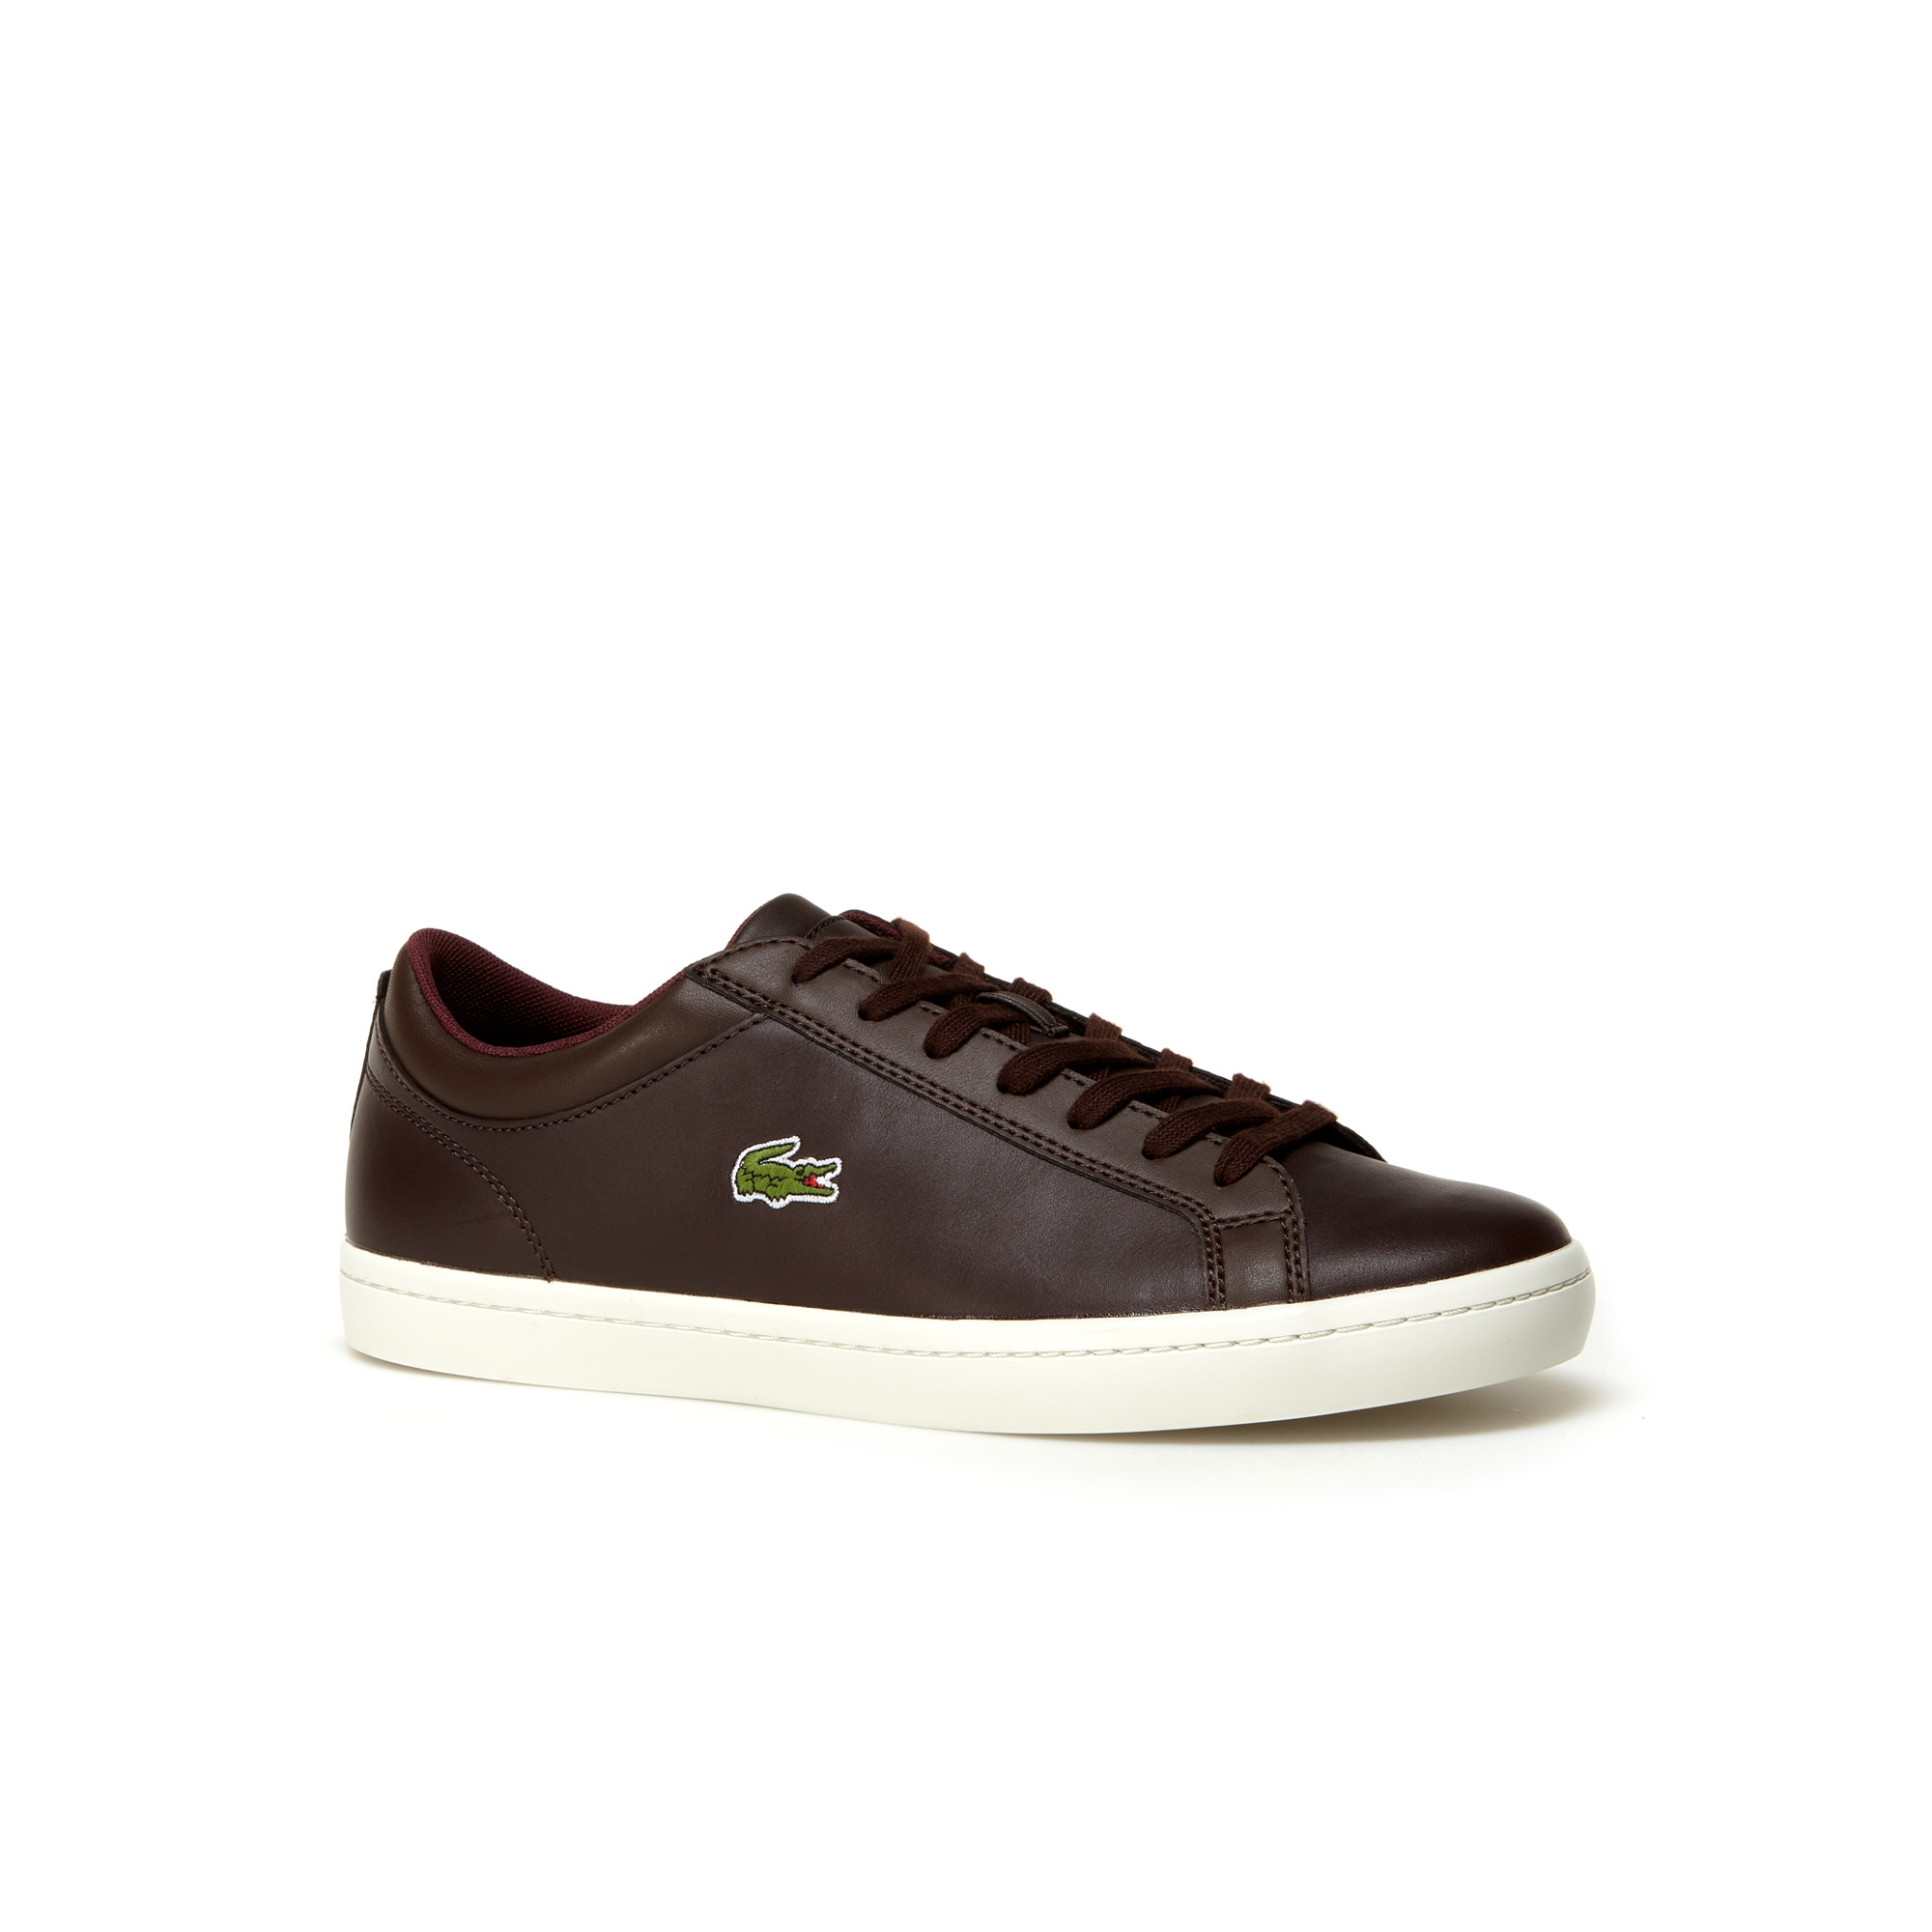 Sneakers Straightset SP in pelle